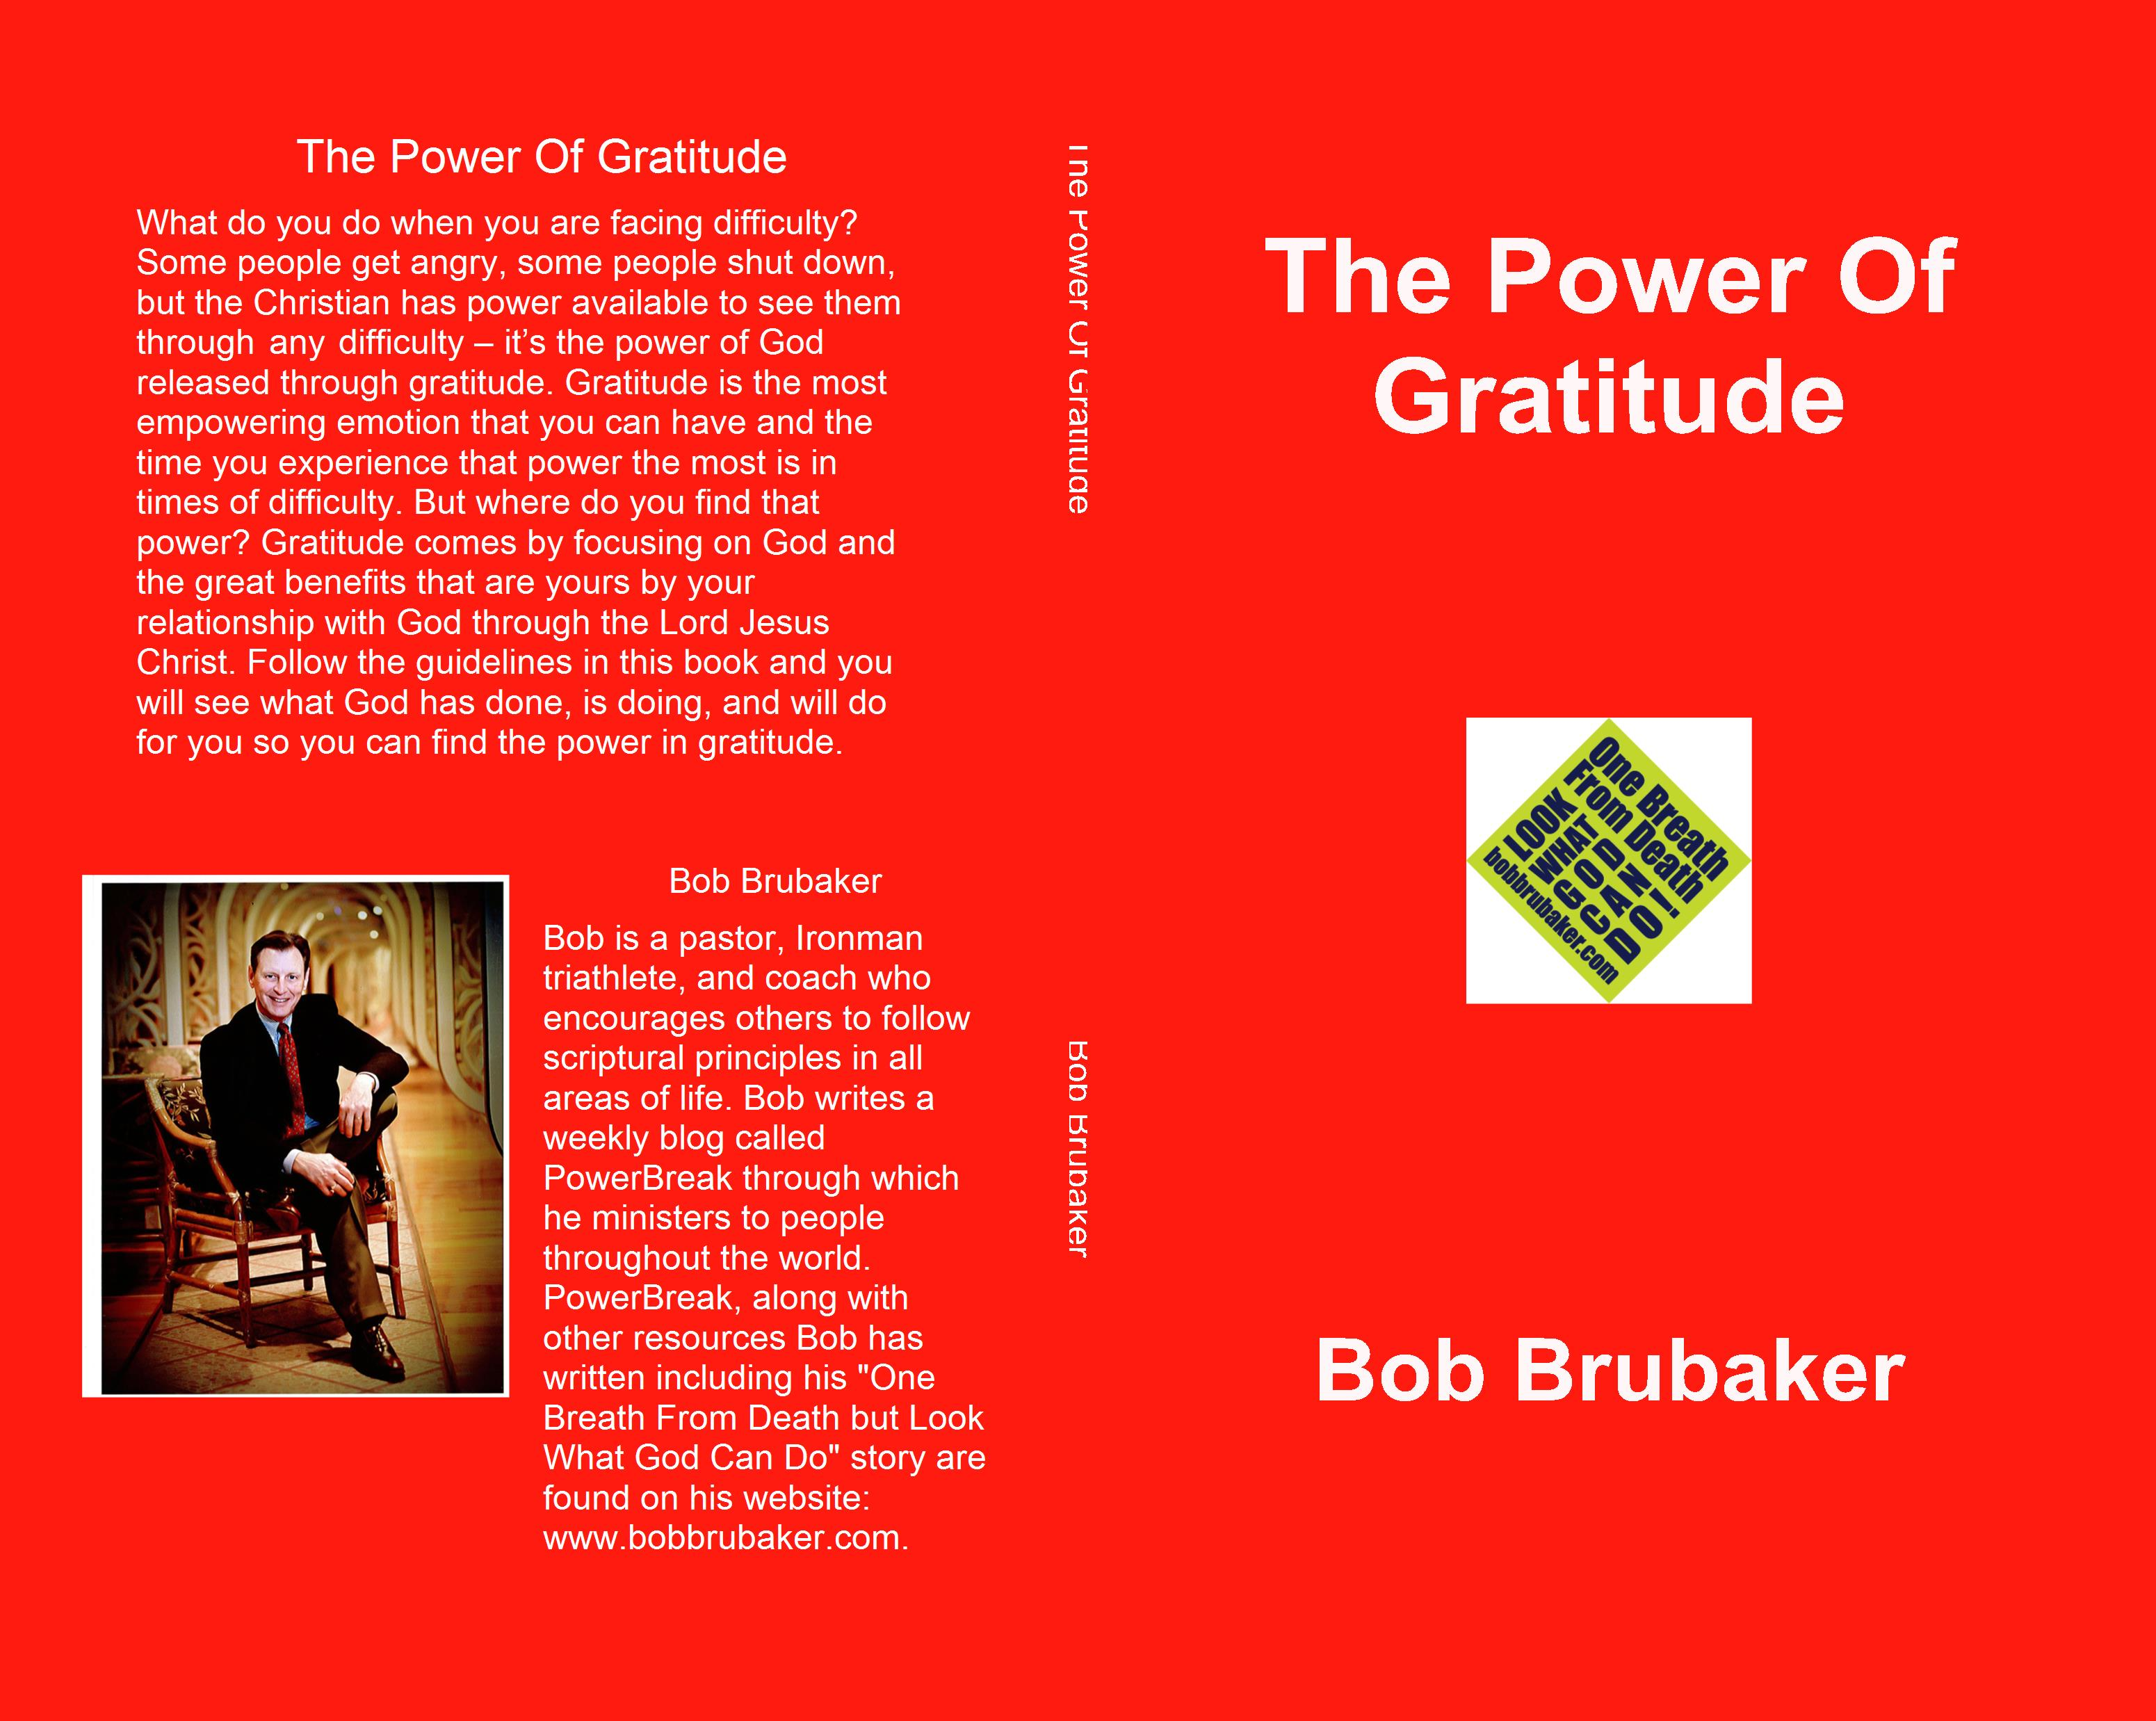 The power of graditude